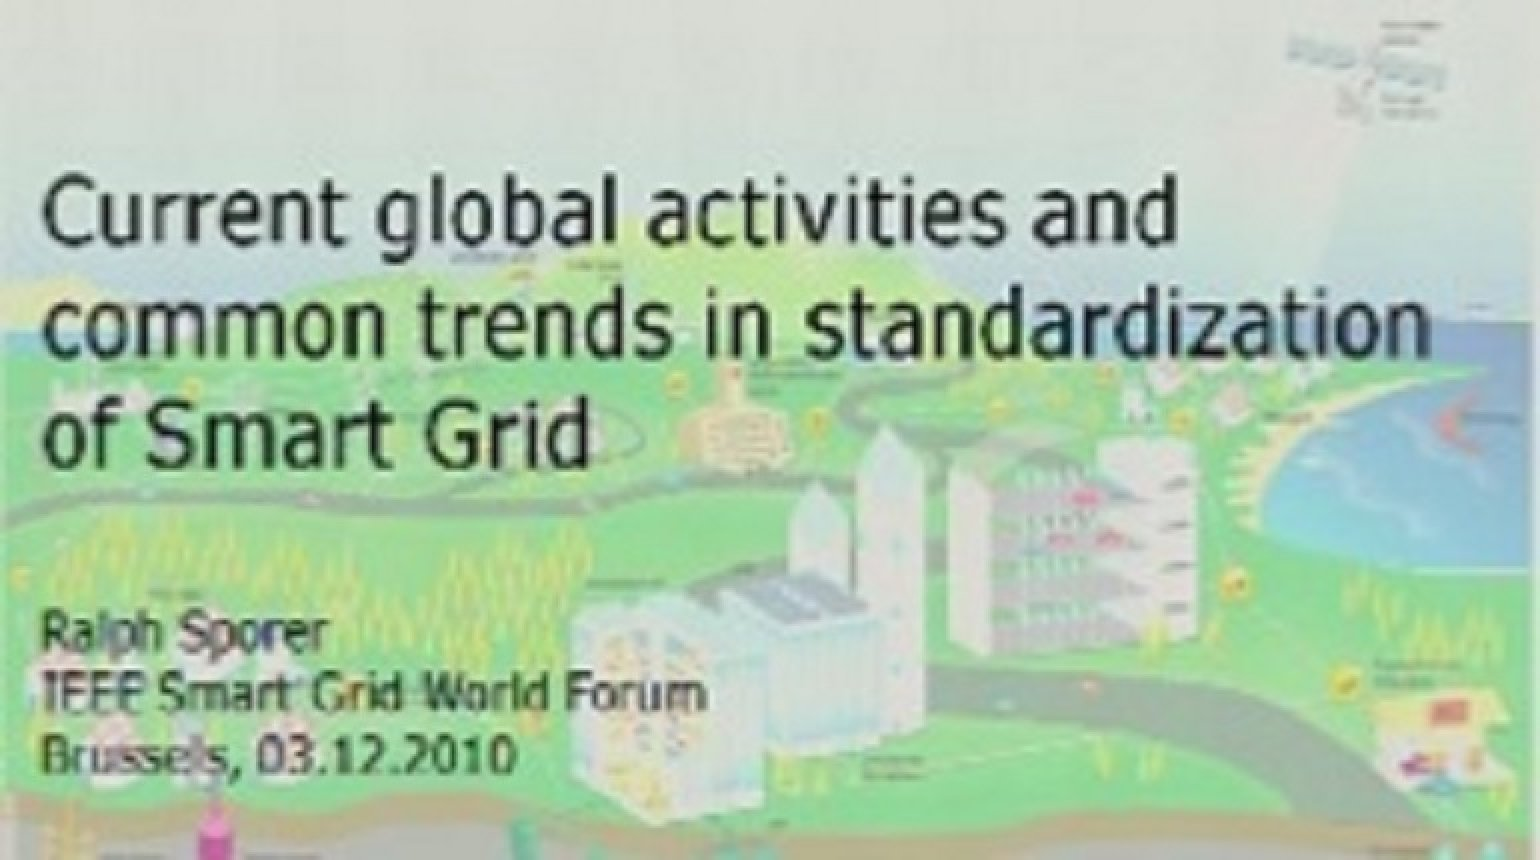 IEEE Smart Grid World Forum - Chris Develder